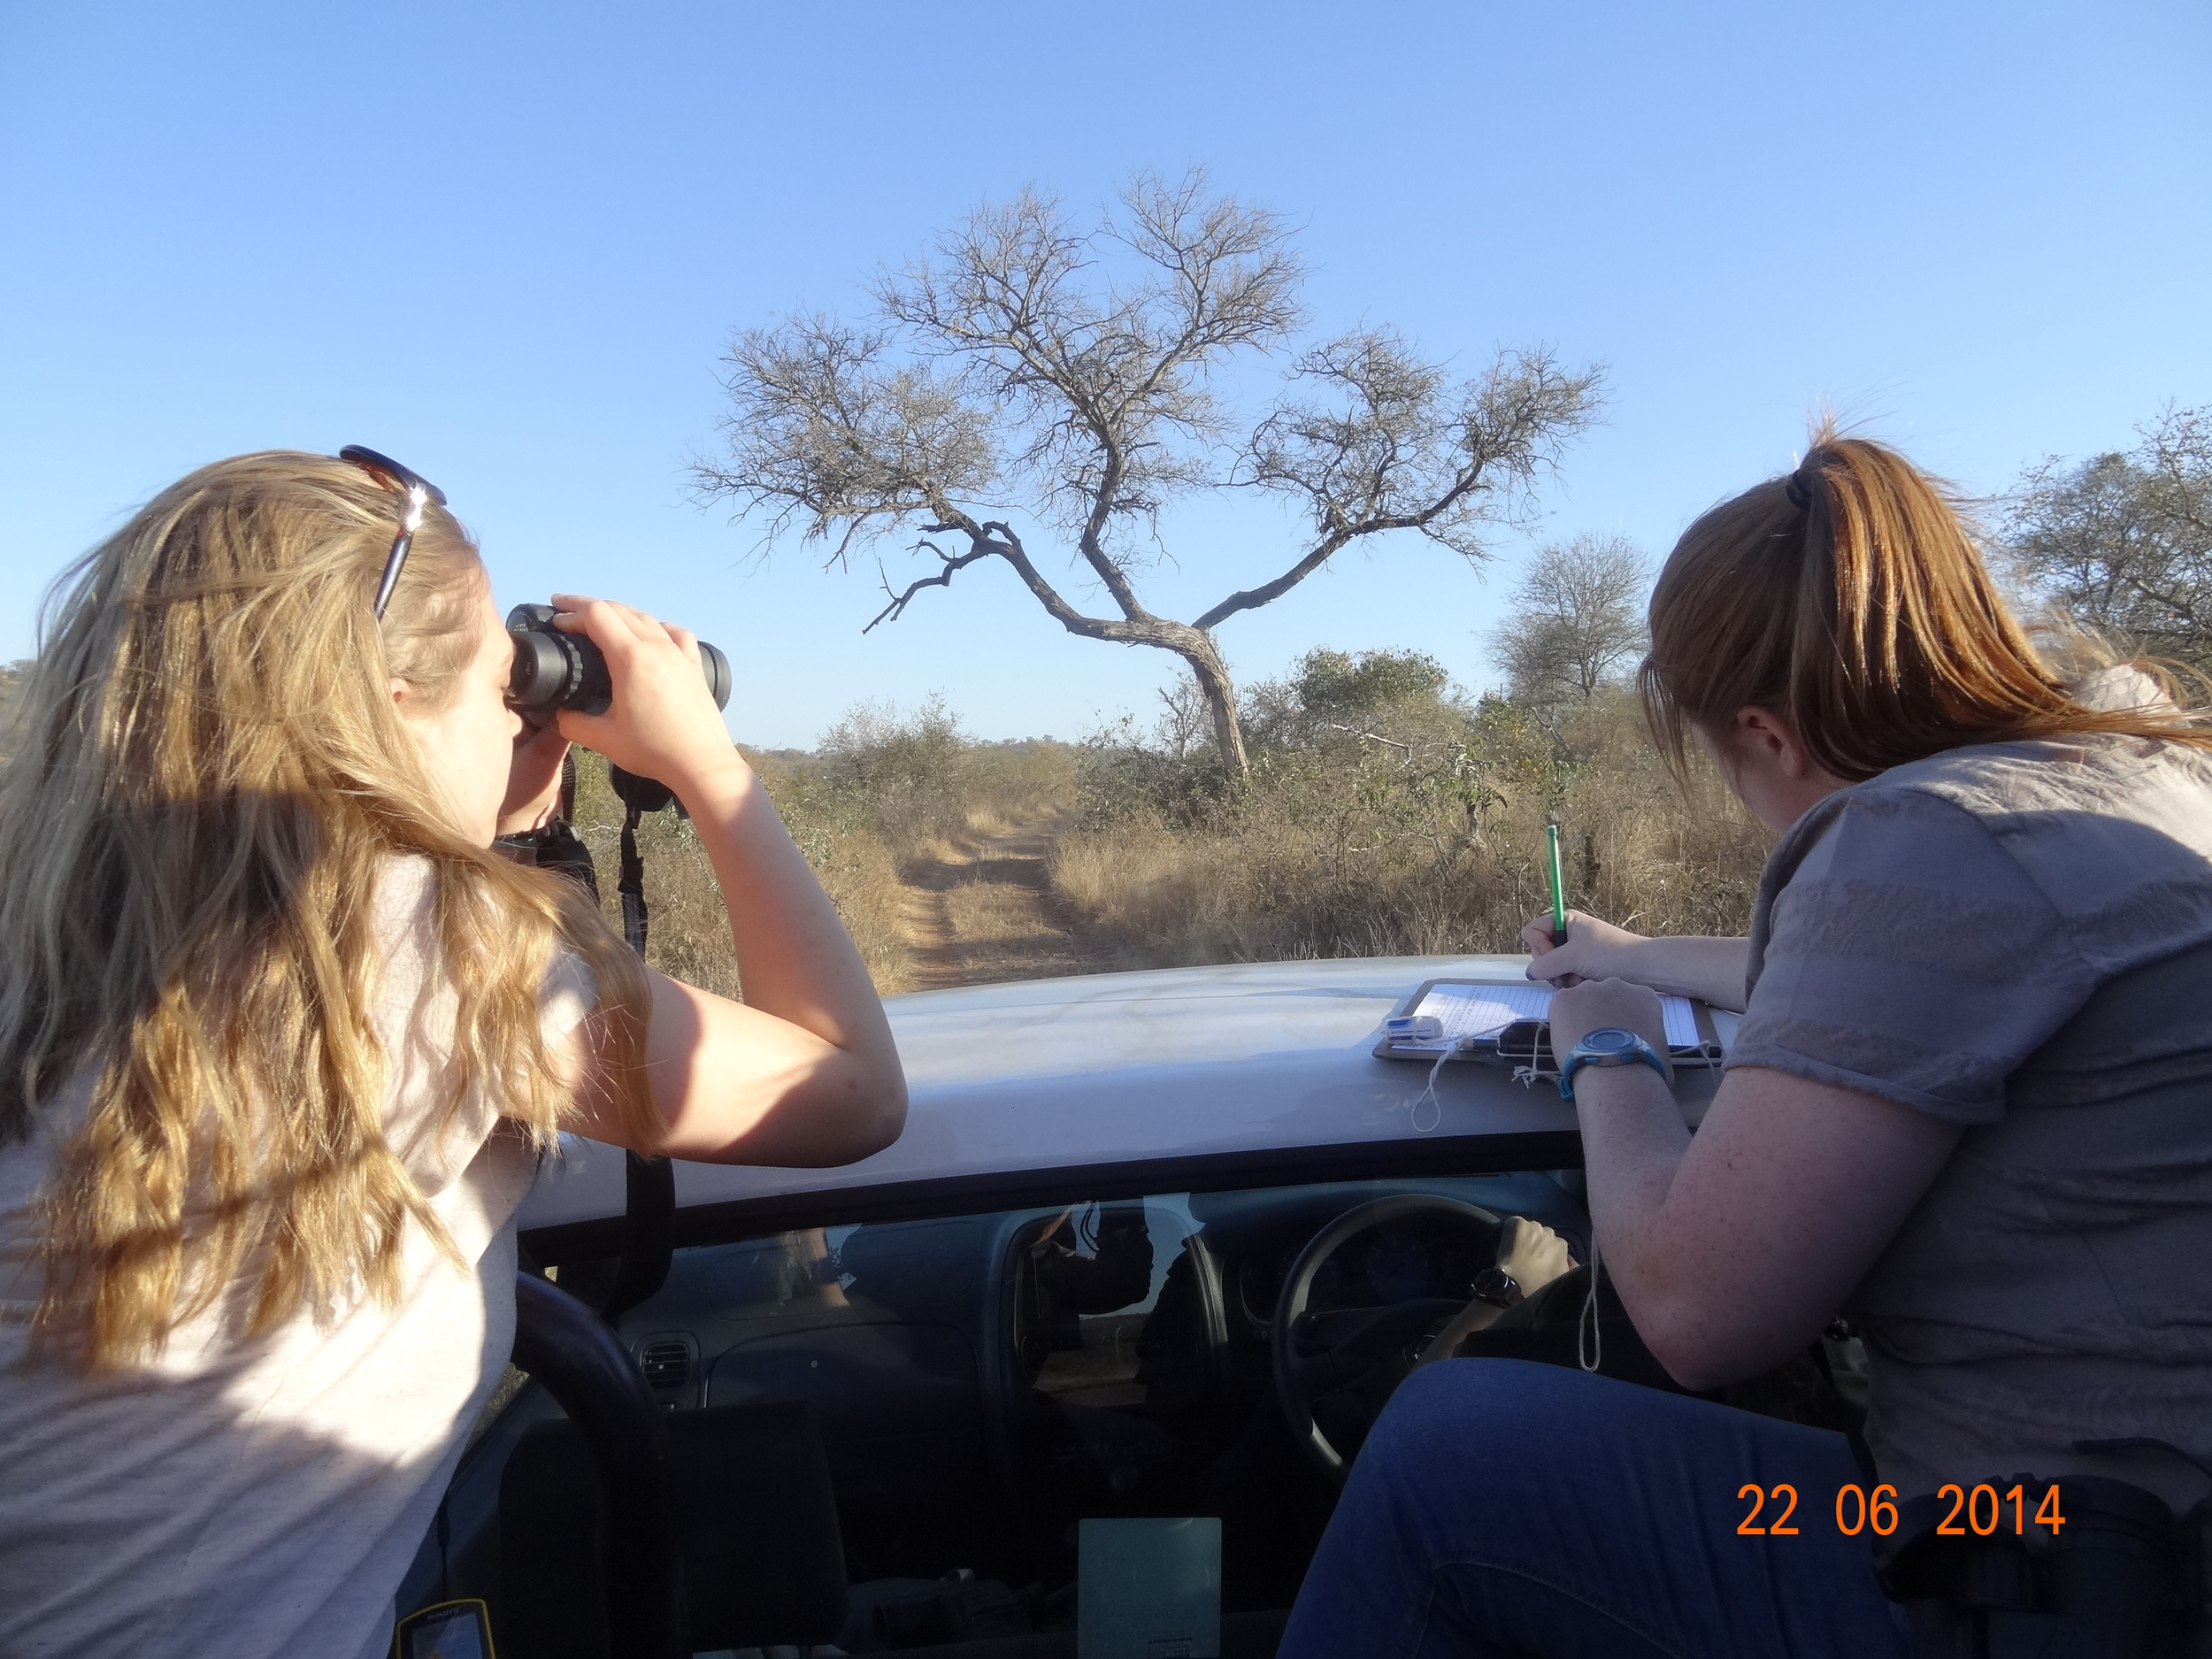 Student identifying and counting species in South Africa